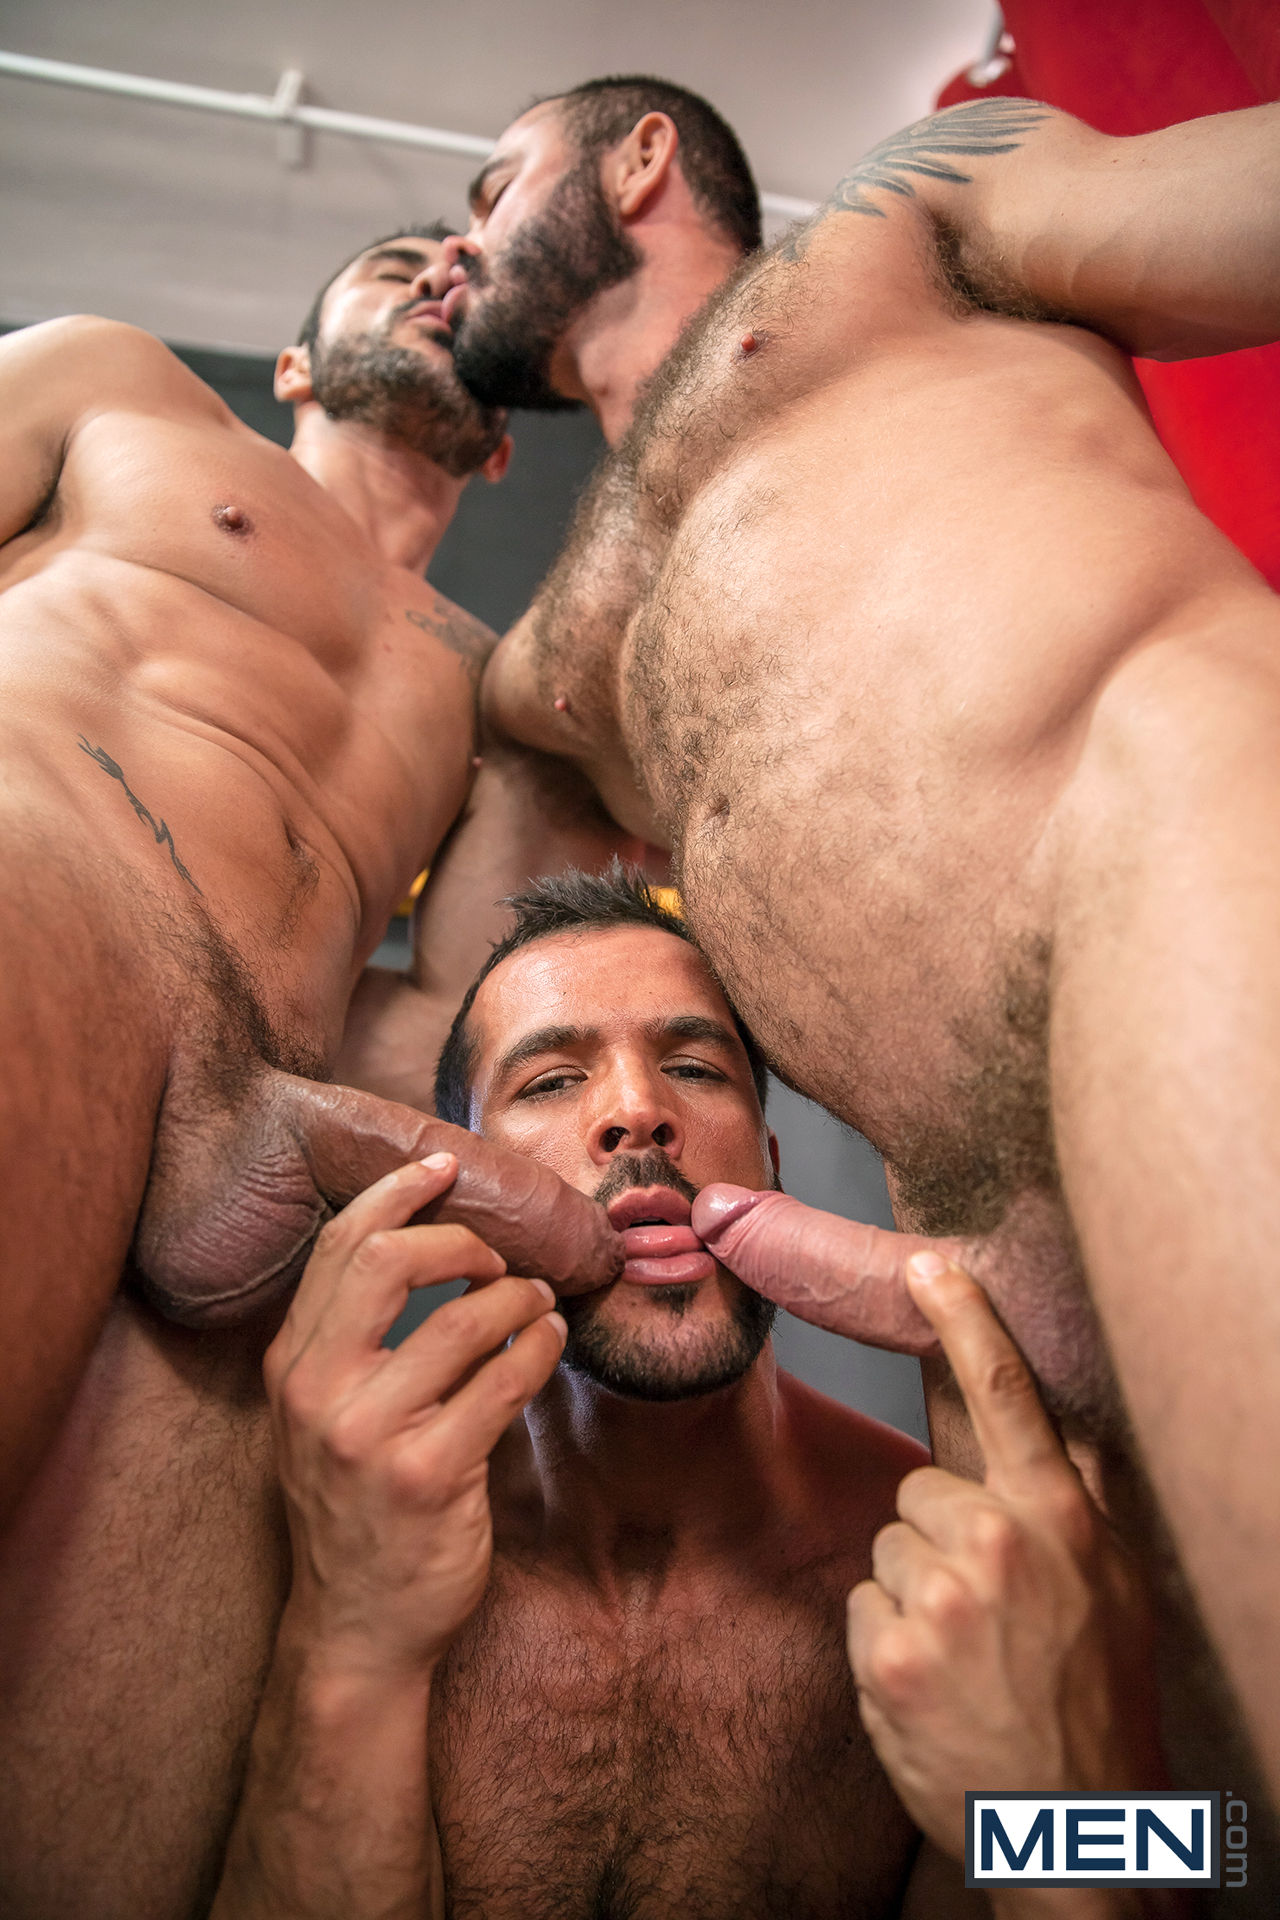 Iron fist in a